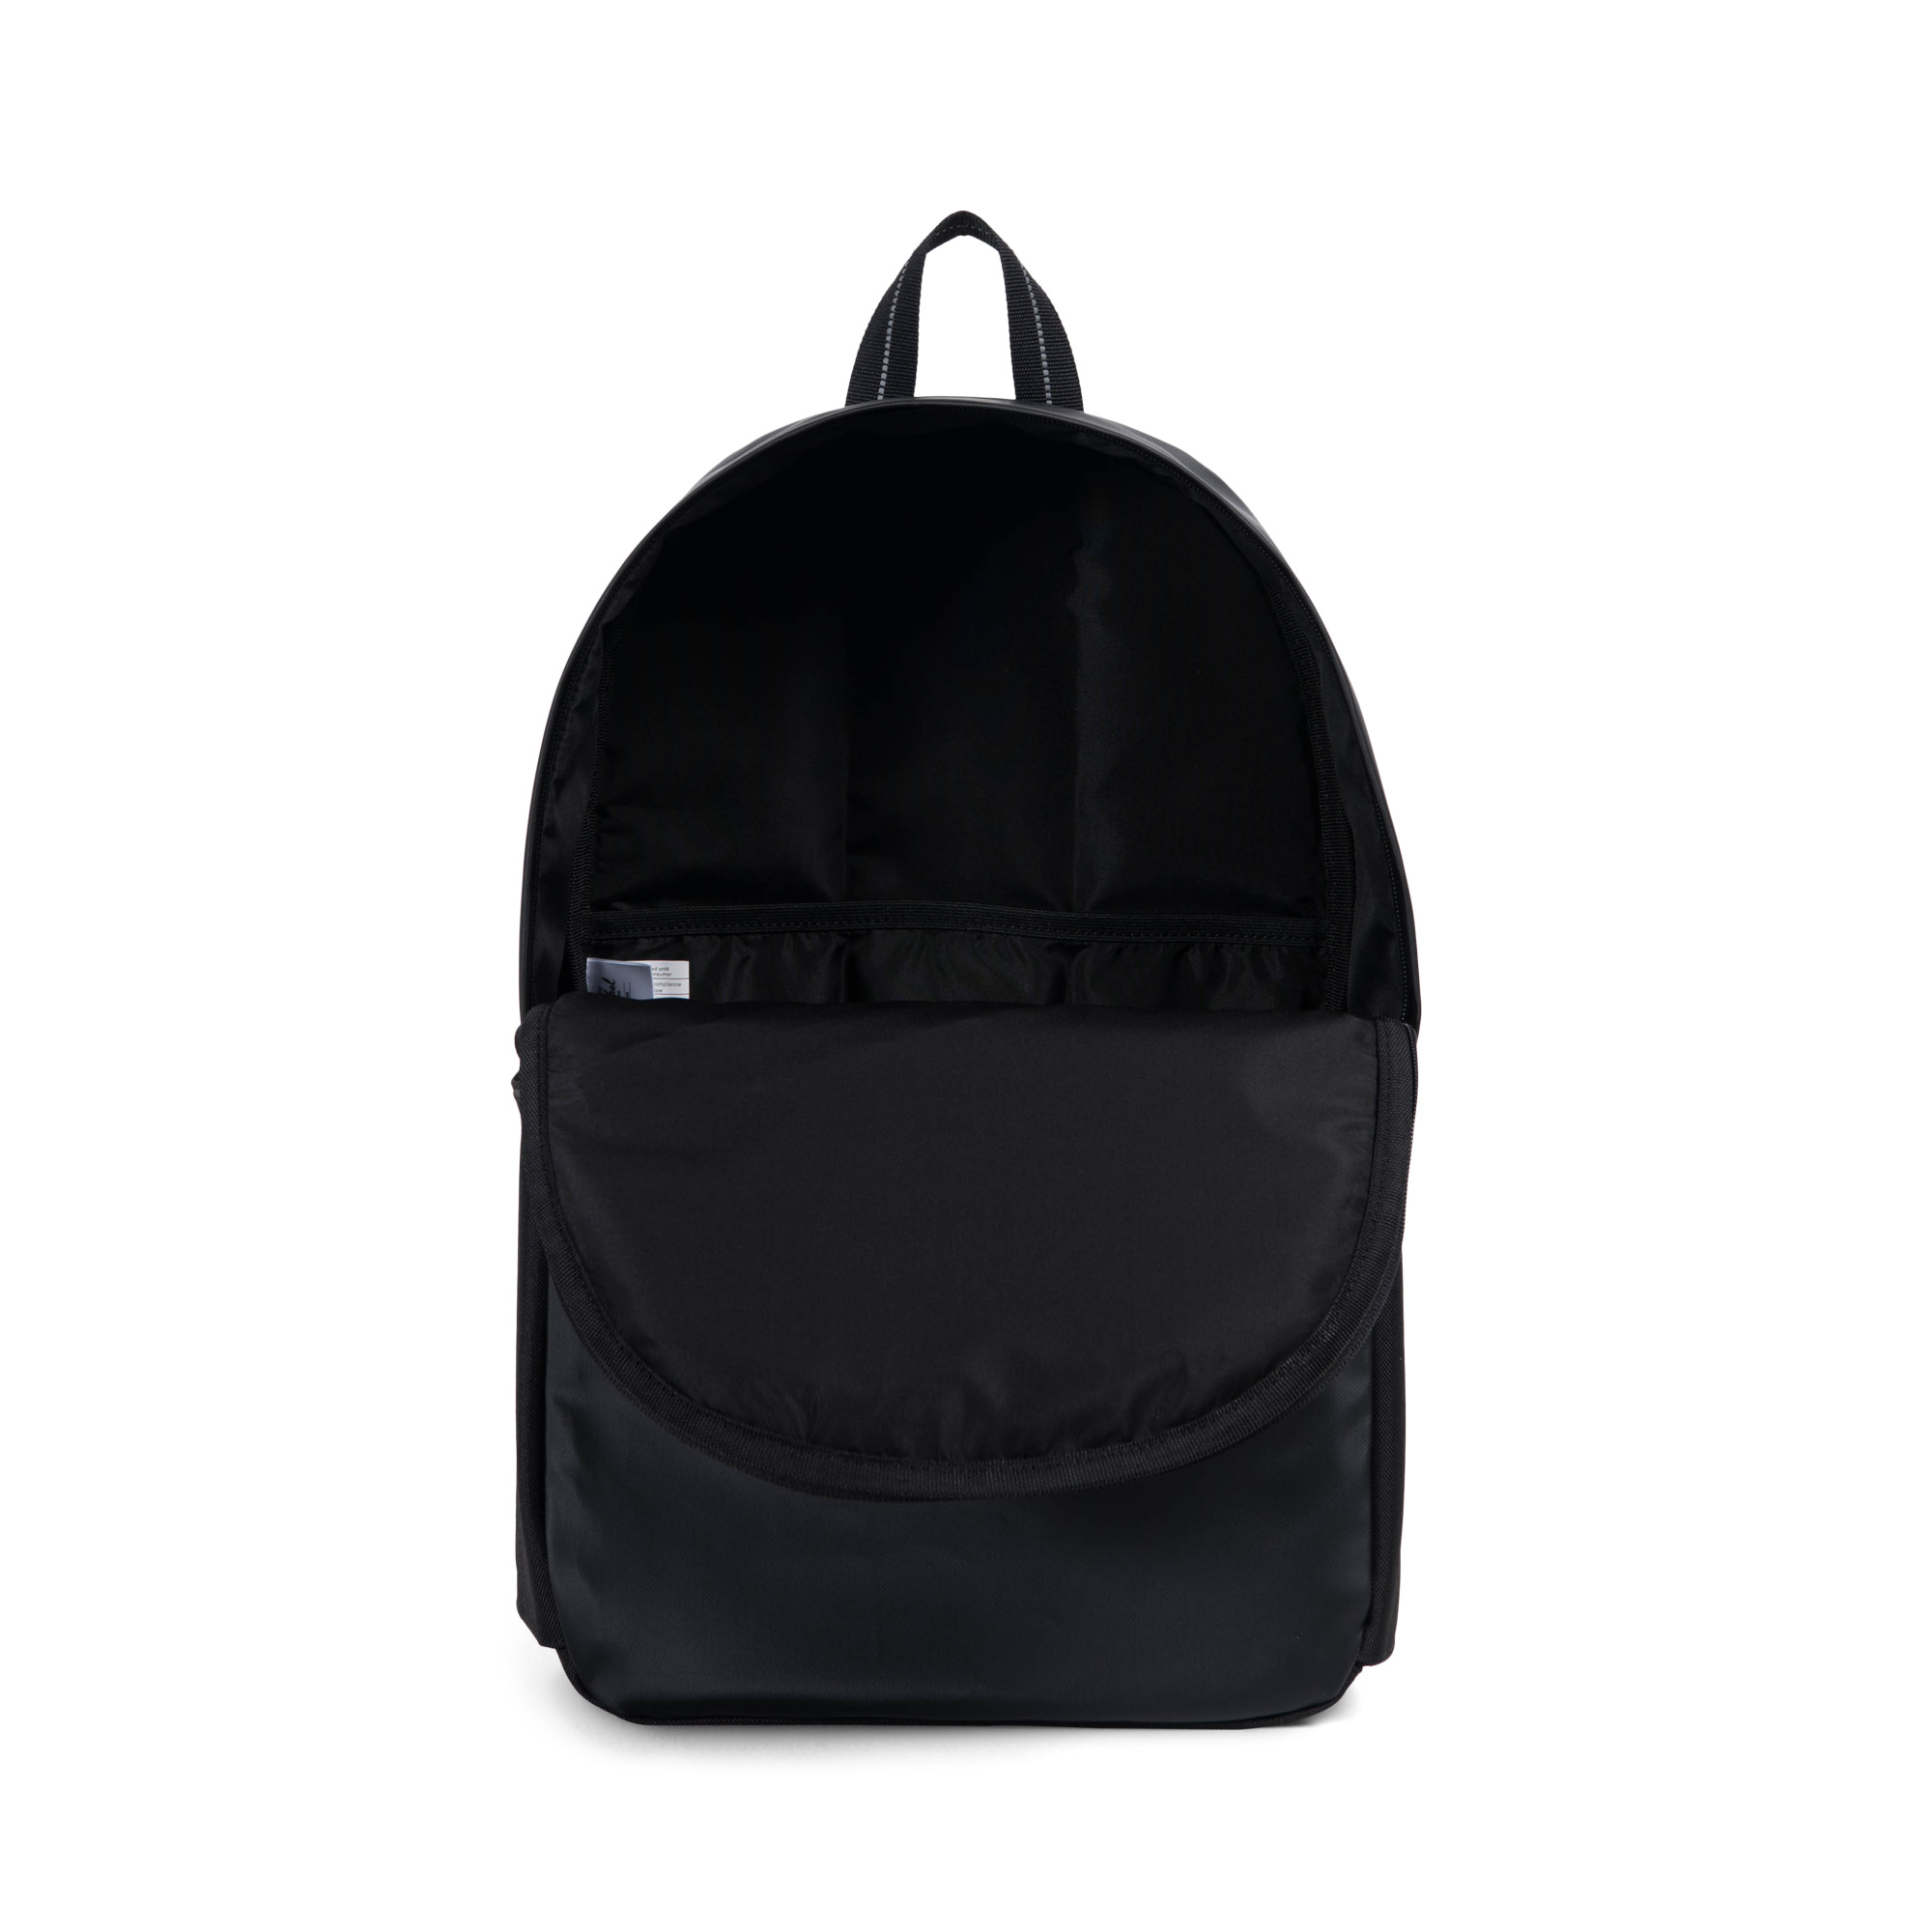 34667677716 Parker Backpack Studio